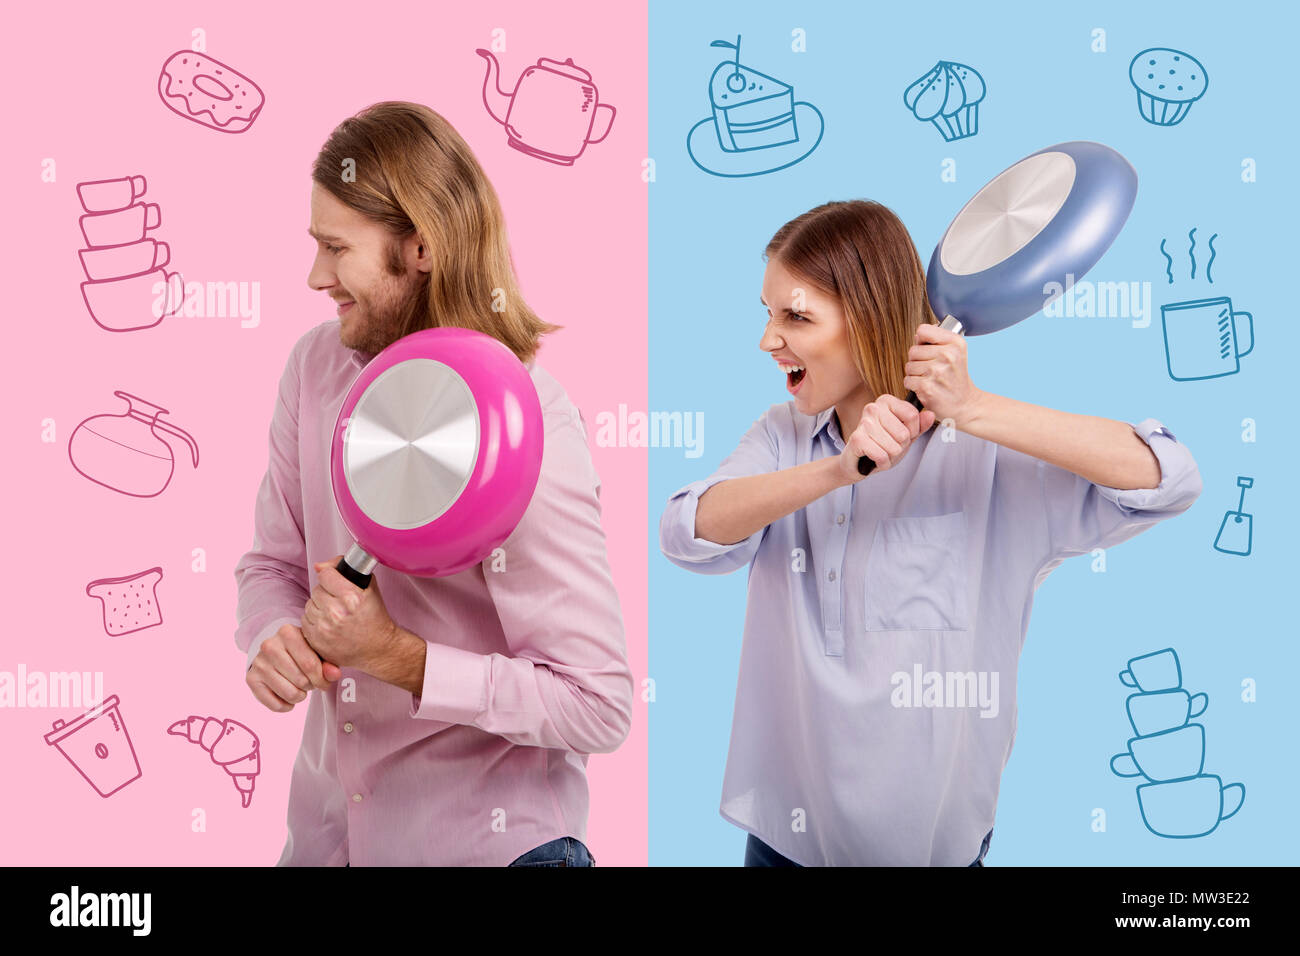 Angry woman holding a frying pan and threatening her husband - Stock Image